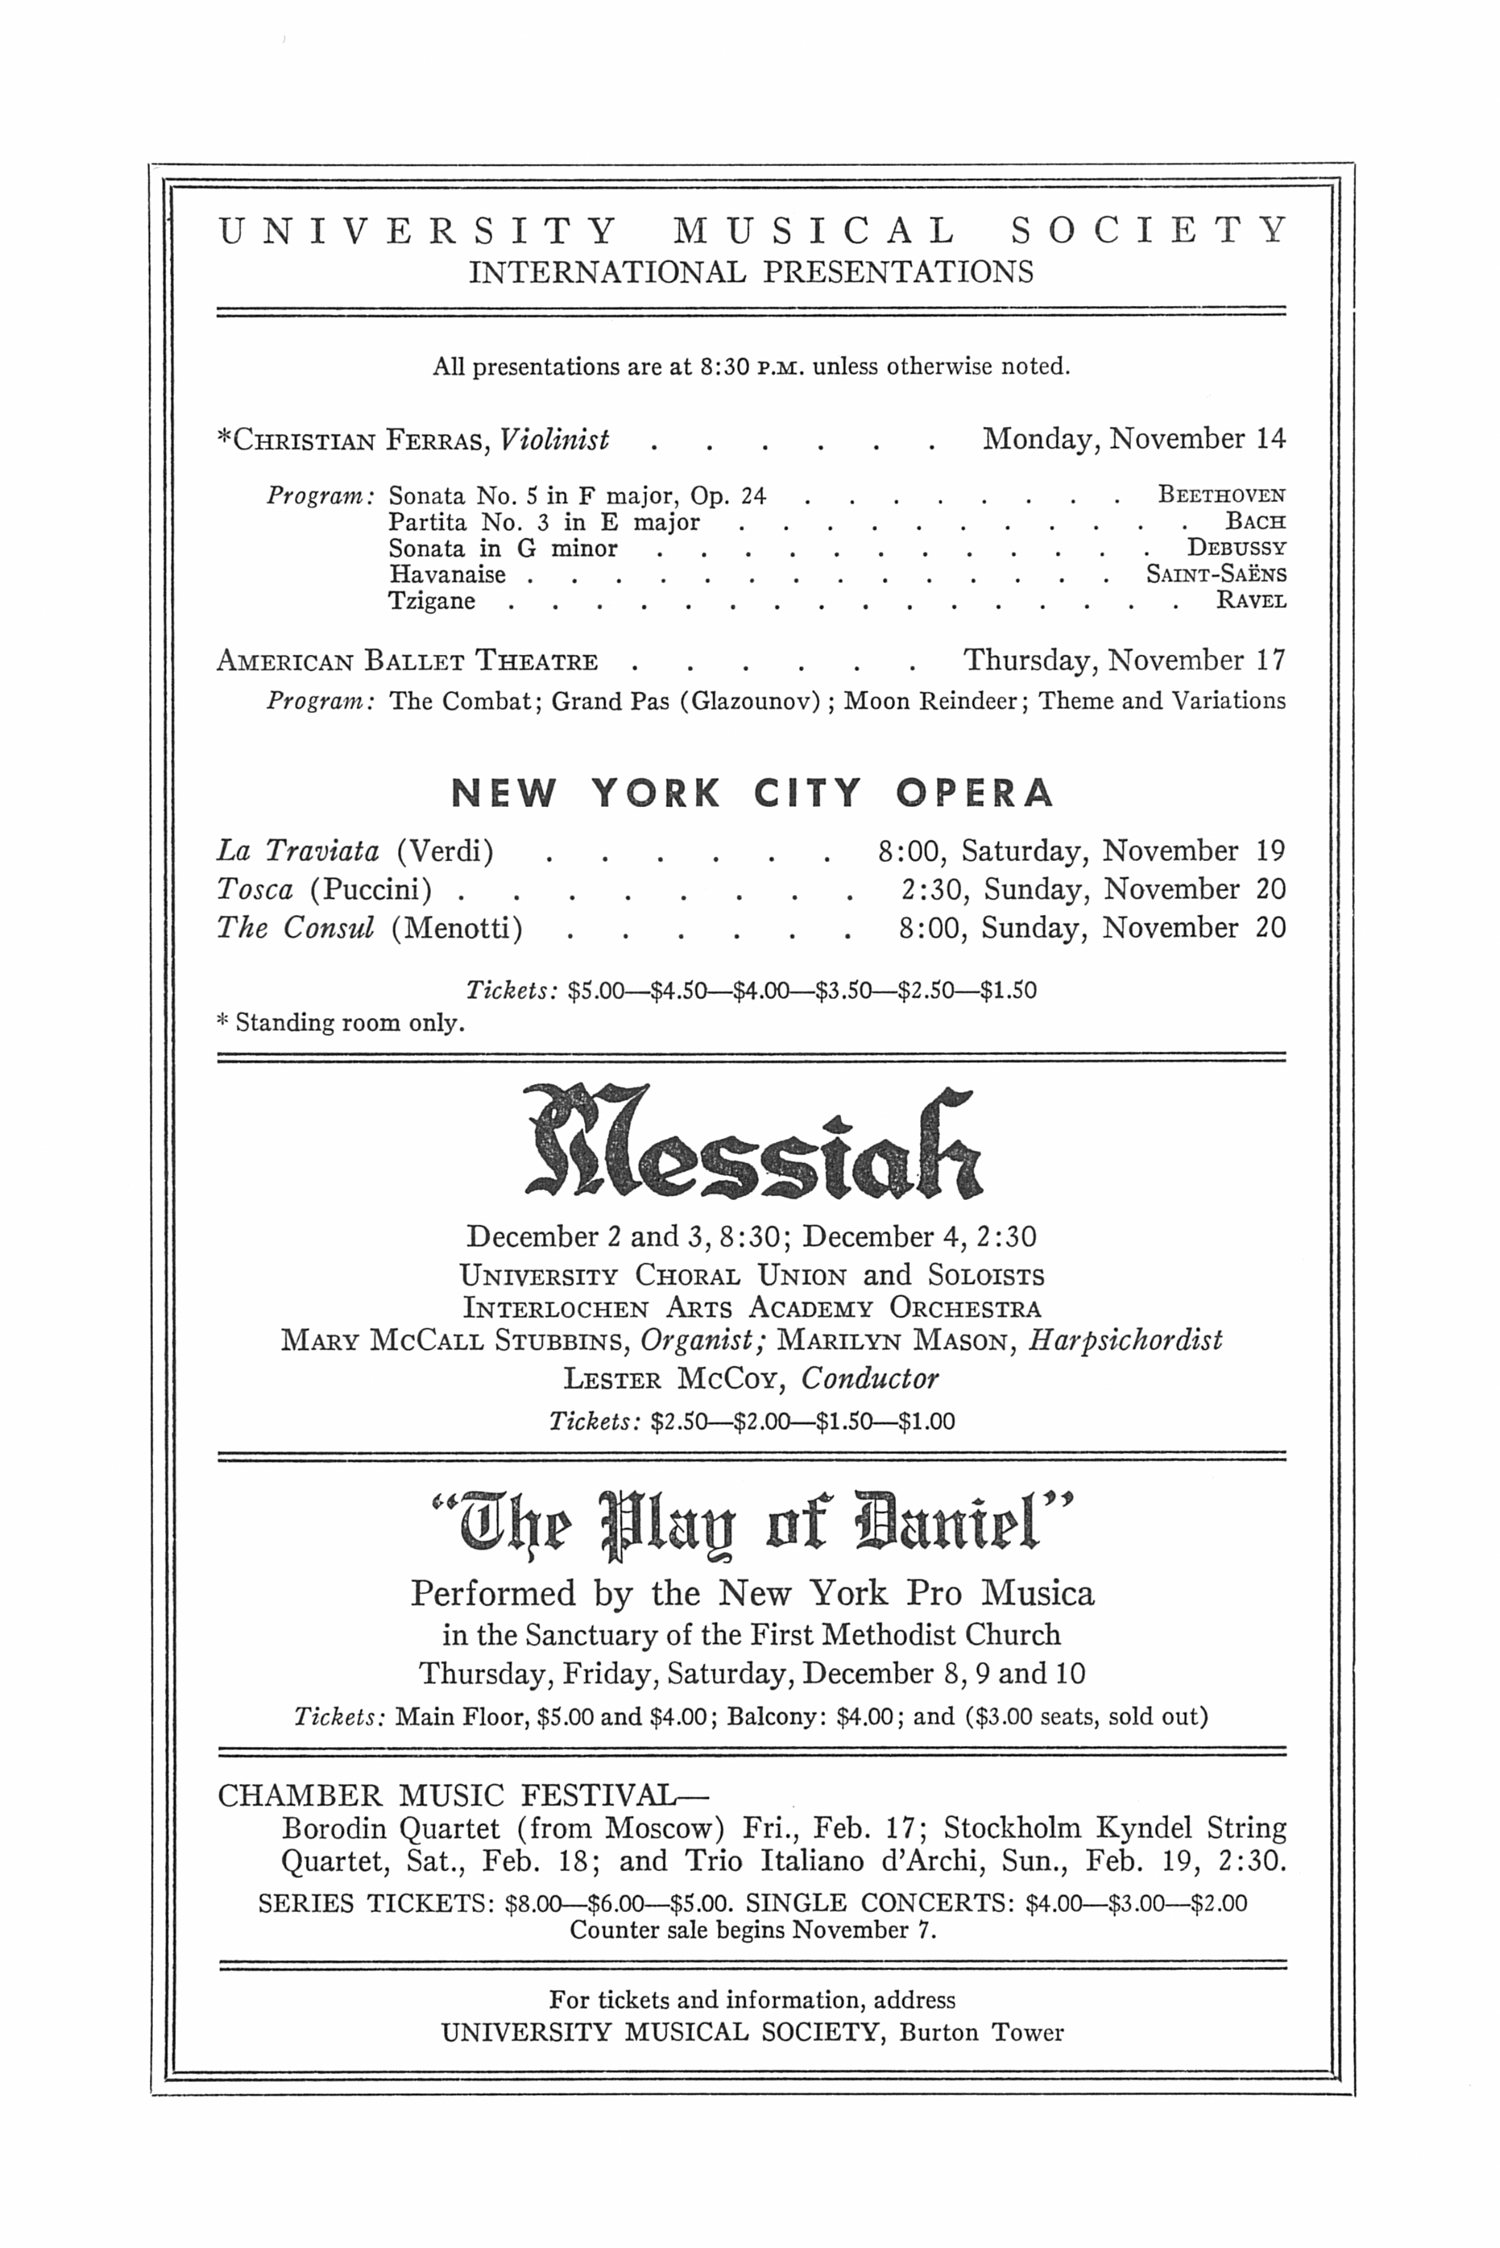 UMS Concert Program, November 8, 1966: Emil Gilels --  image